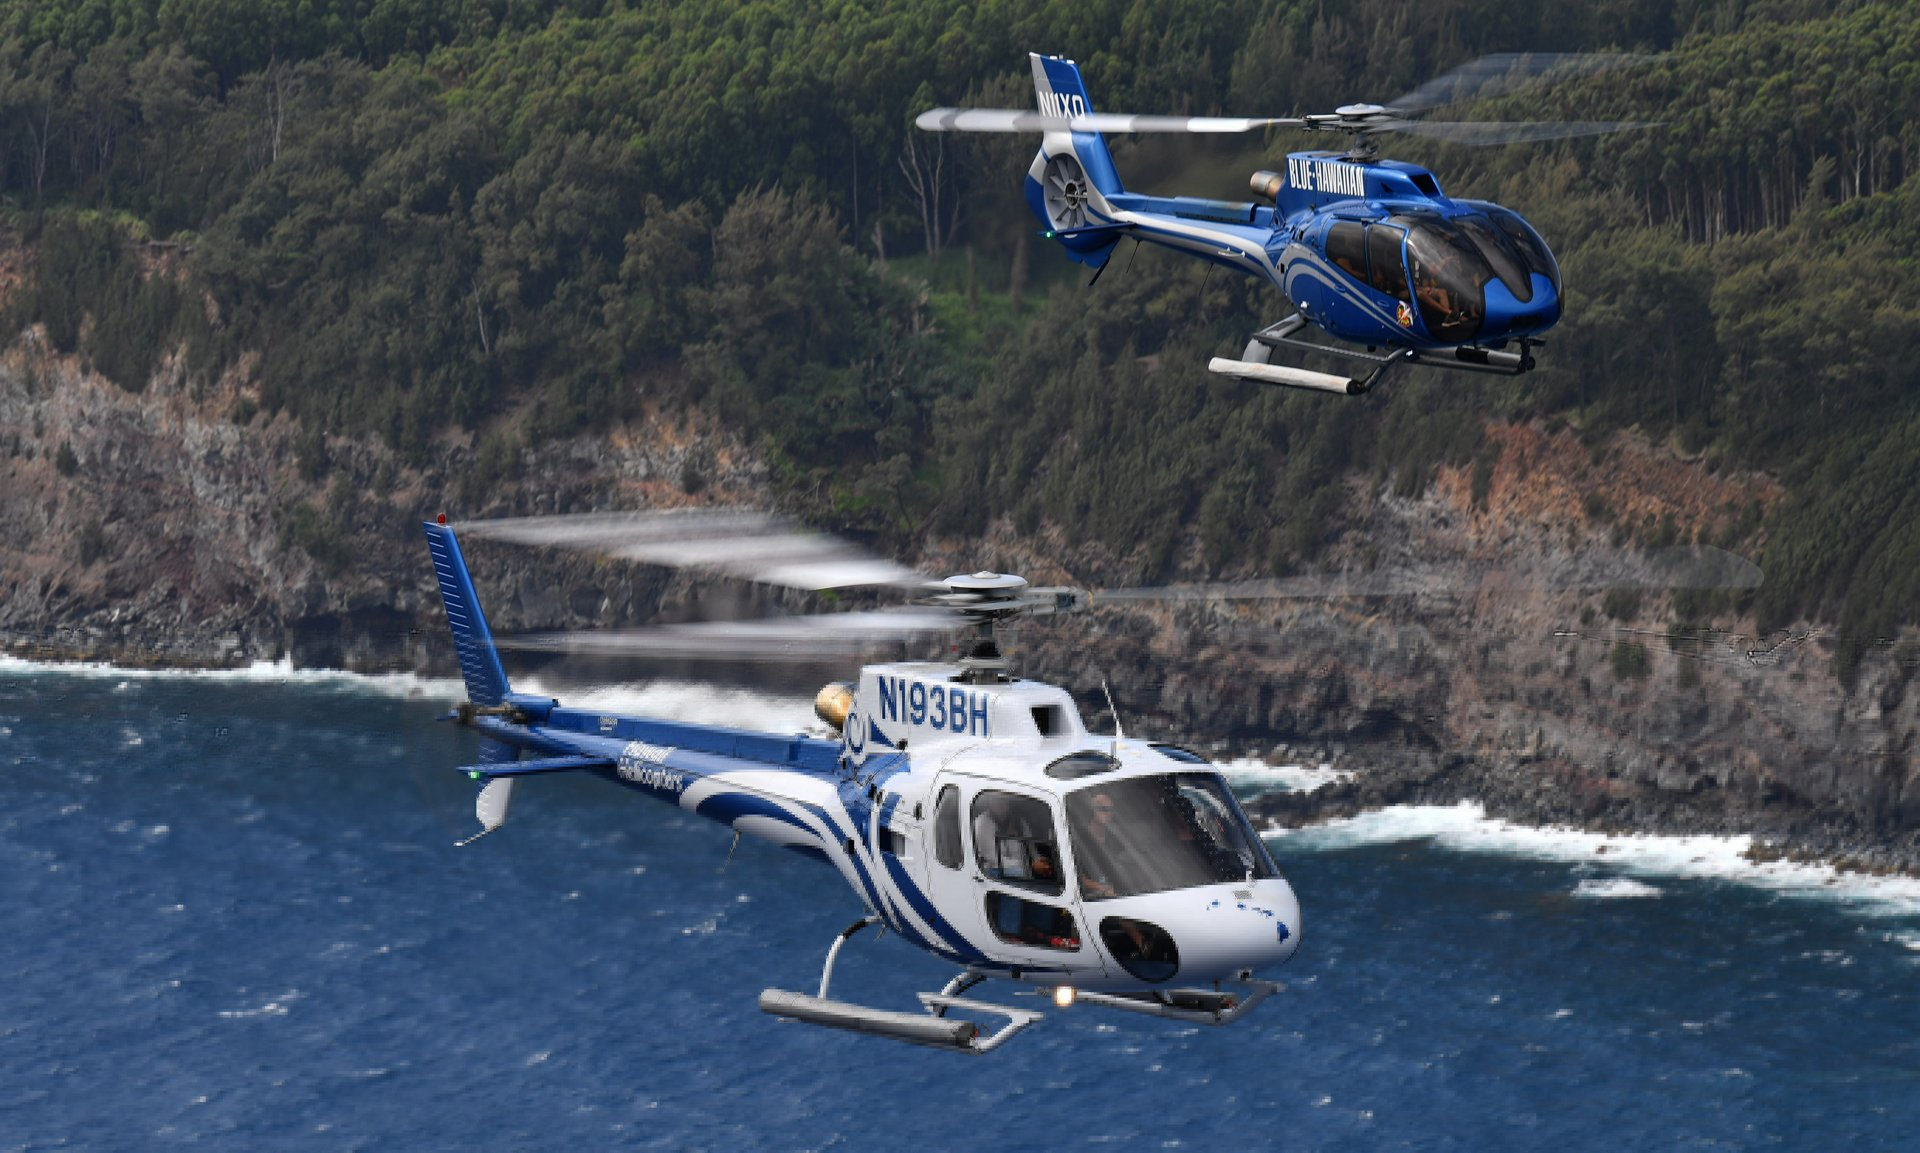 Airbus H125 and H130 helicopter customers will get a boost in their operations thanks to a significant reduction in direct maintenance costs for the Safran Arriel 2D engine, which equips both single engines.